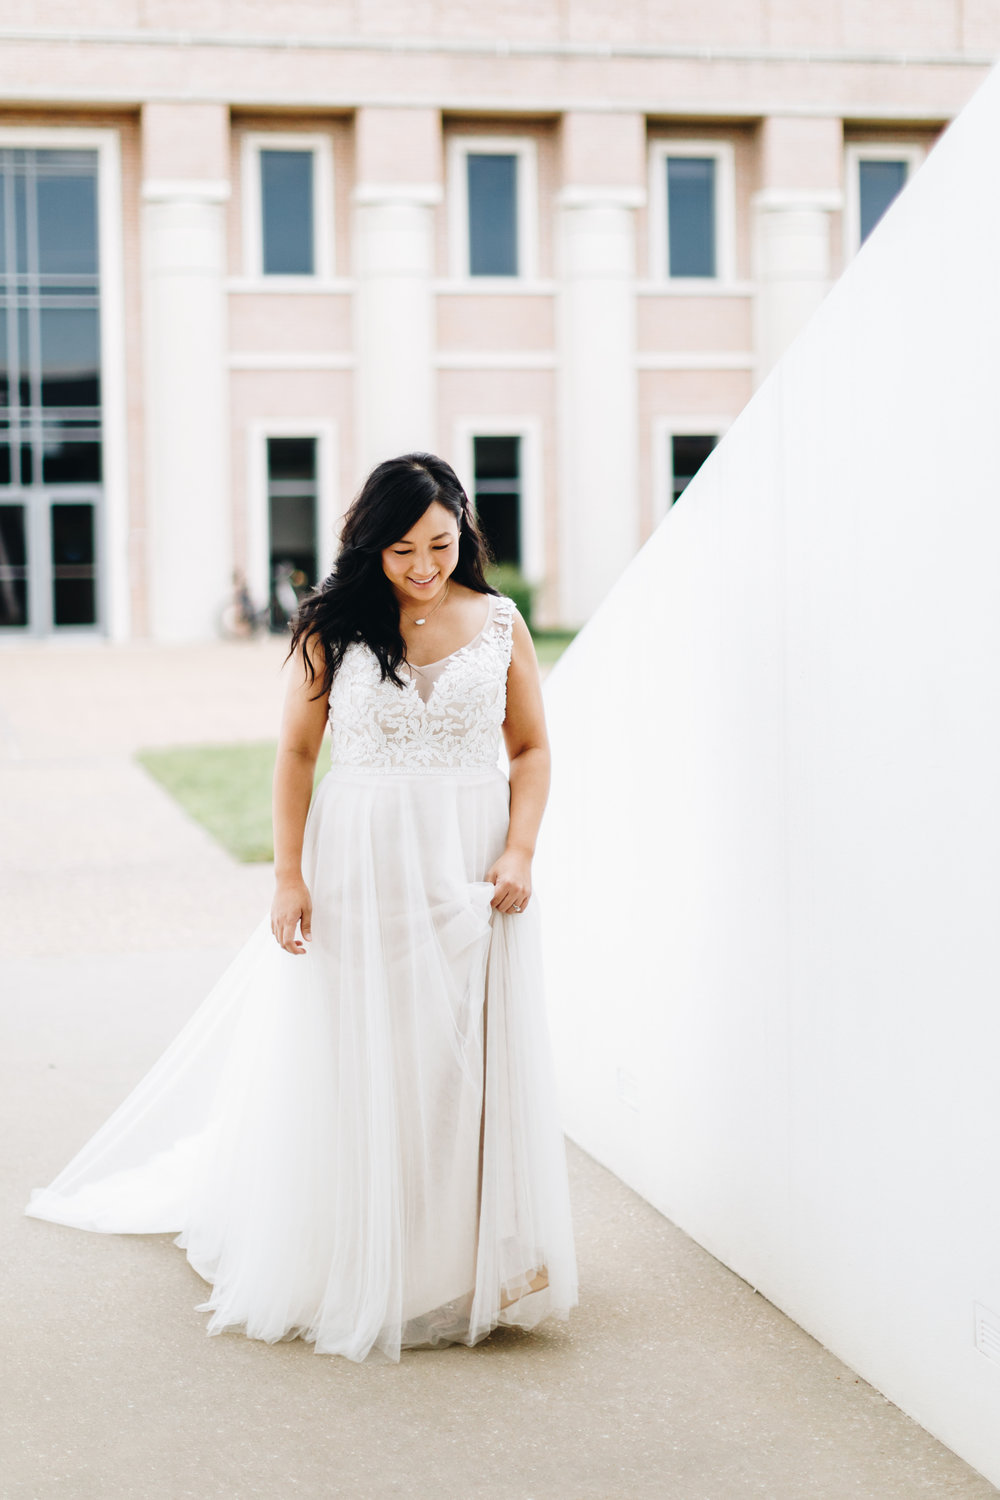 Rice University Wedding-25.jpg